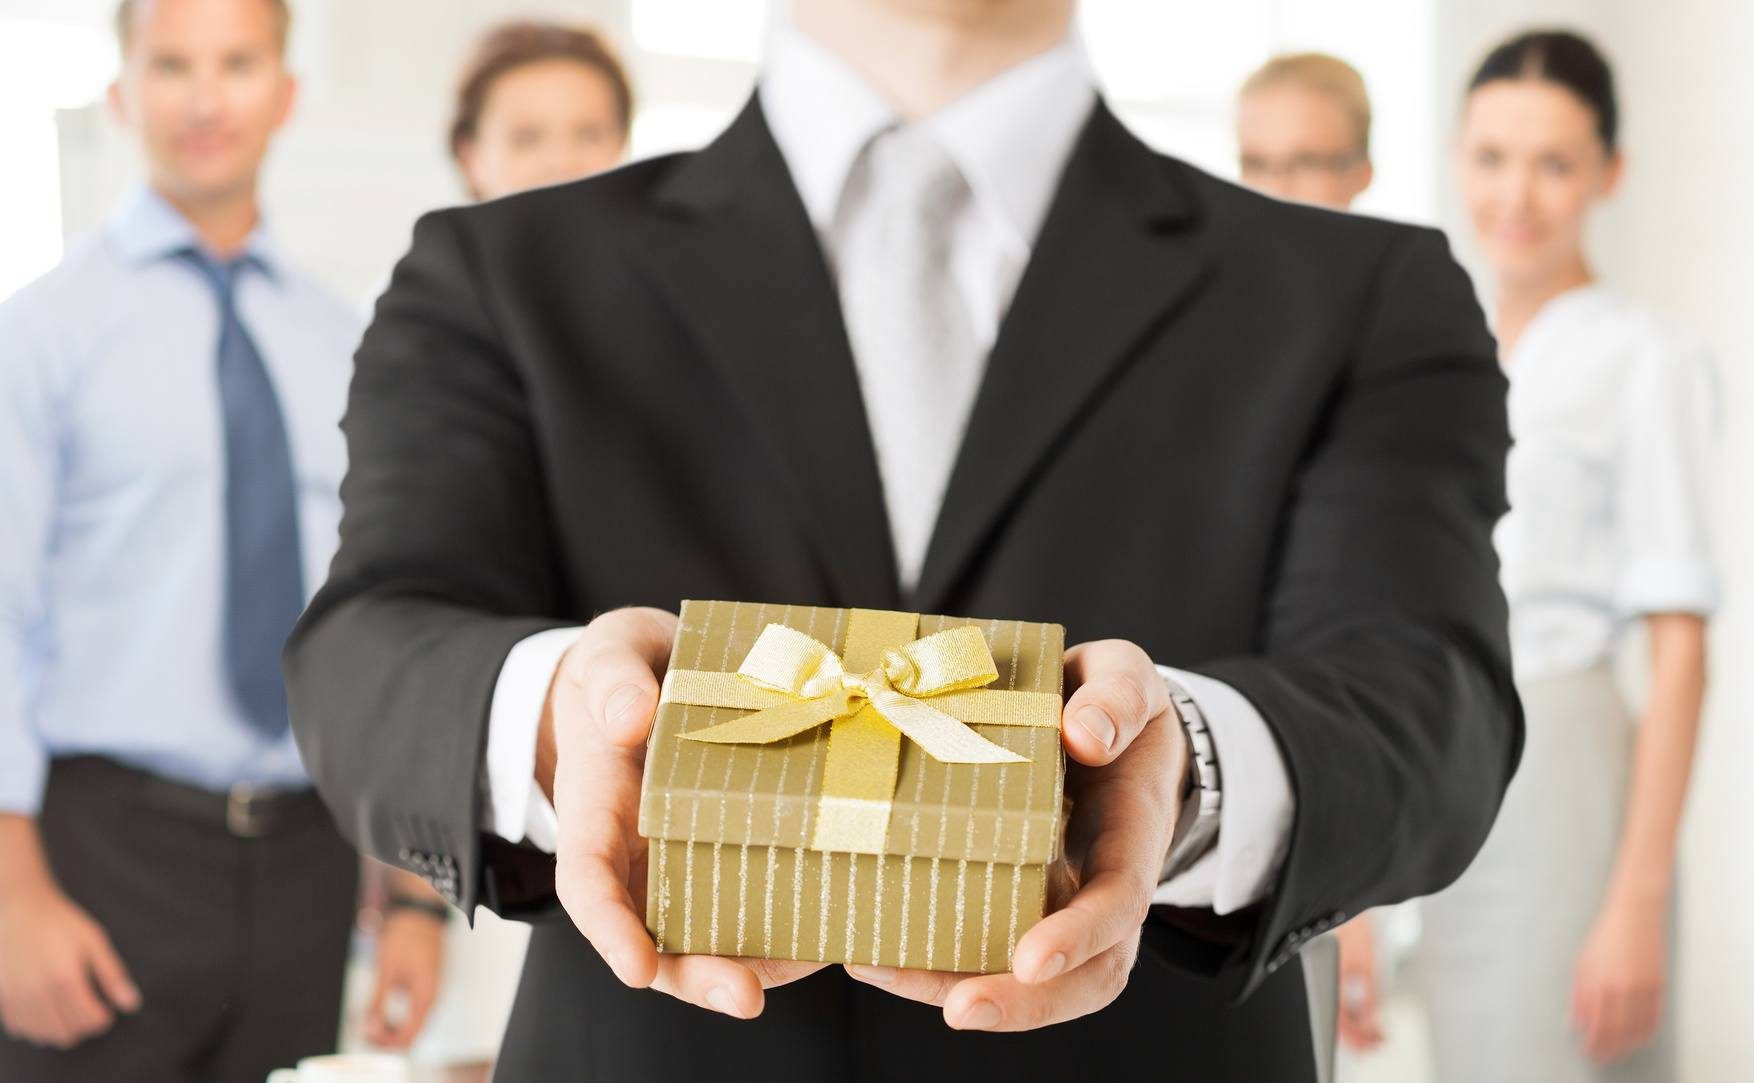 Corporate Gifts-Making The Right Impression On The Right People